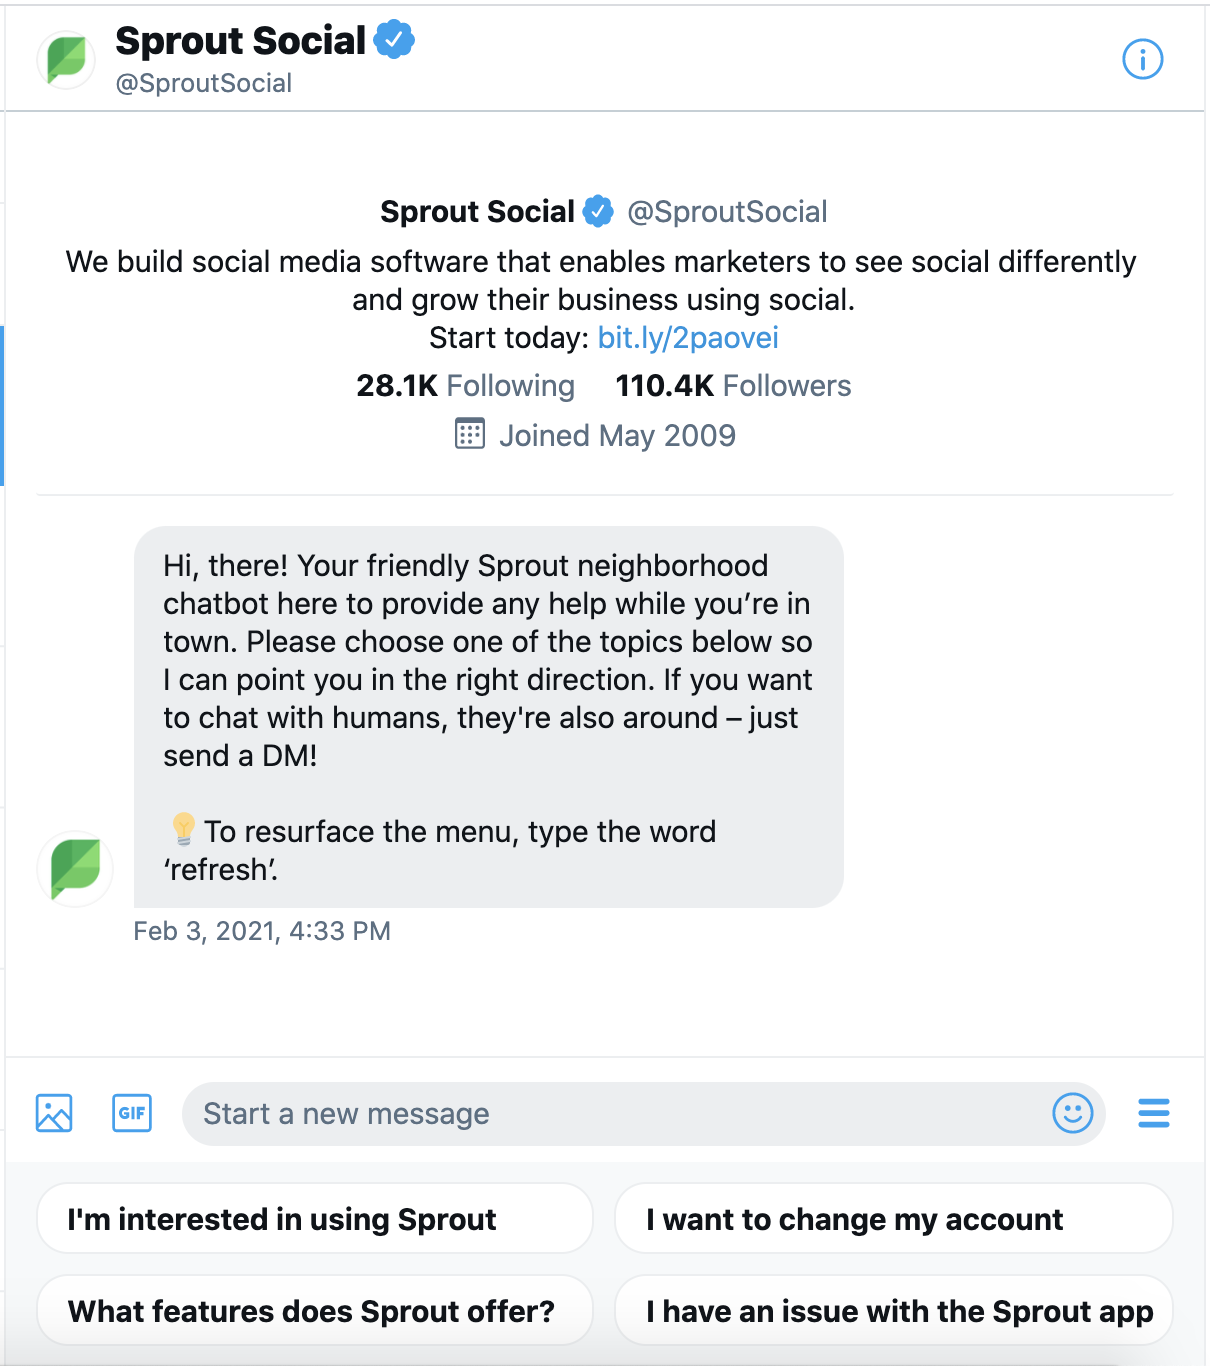 Sprout Twitter Bot Welcome - Hi, there! Your friendly Sprout neighborhood chatbot here to provide any help while you're in town. Please choose one of the topics below so I can point you in the right direction. If you want to chat with humans, they're also around – just send a DM! Electric light bulbTo resurface the menu, type the word 'refresh'.